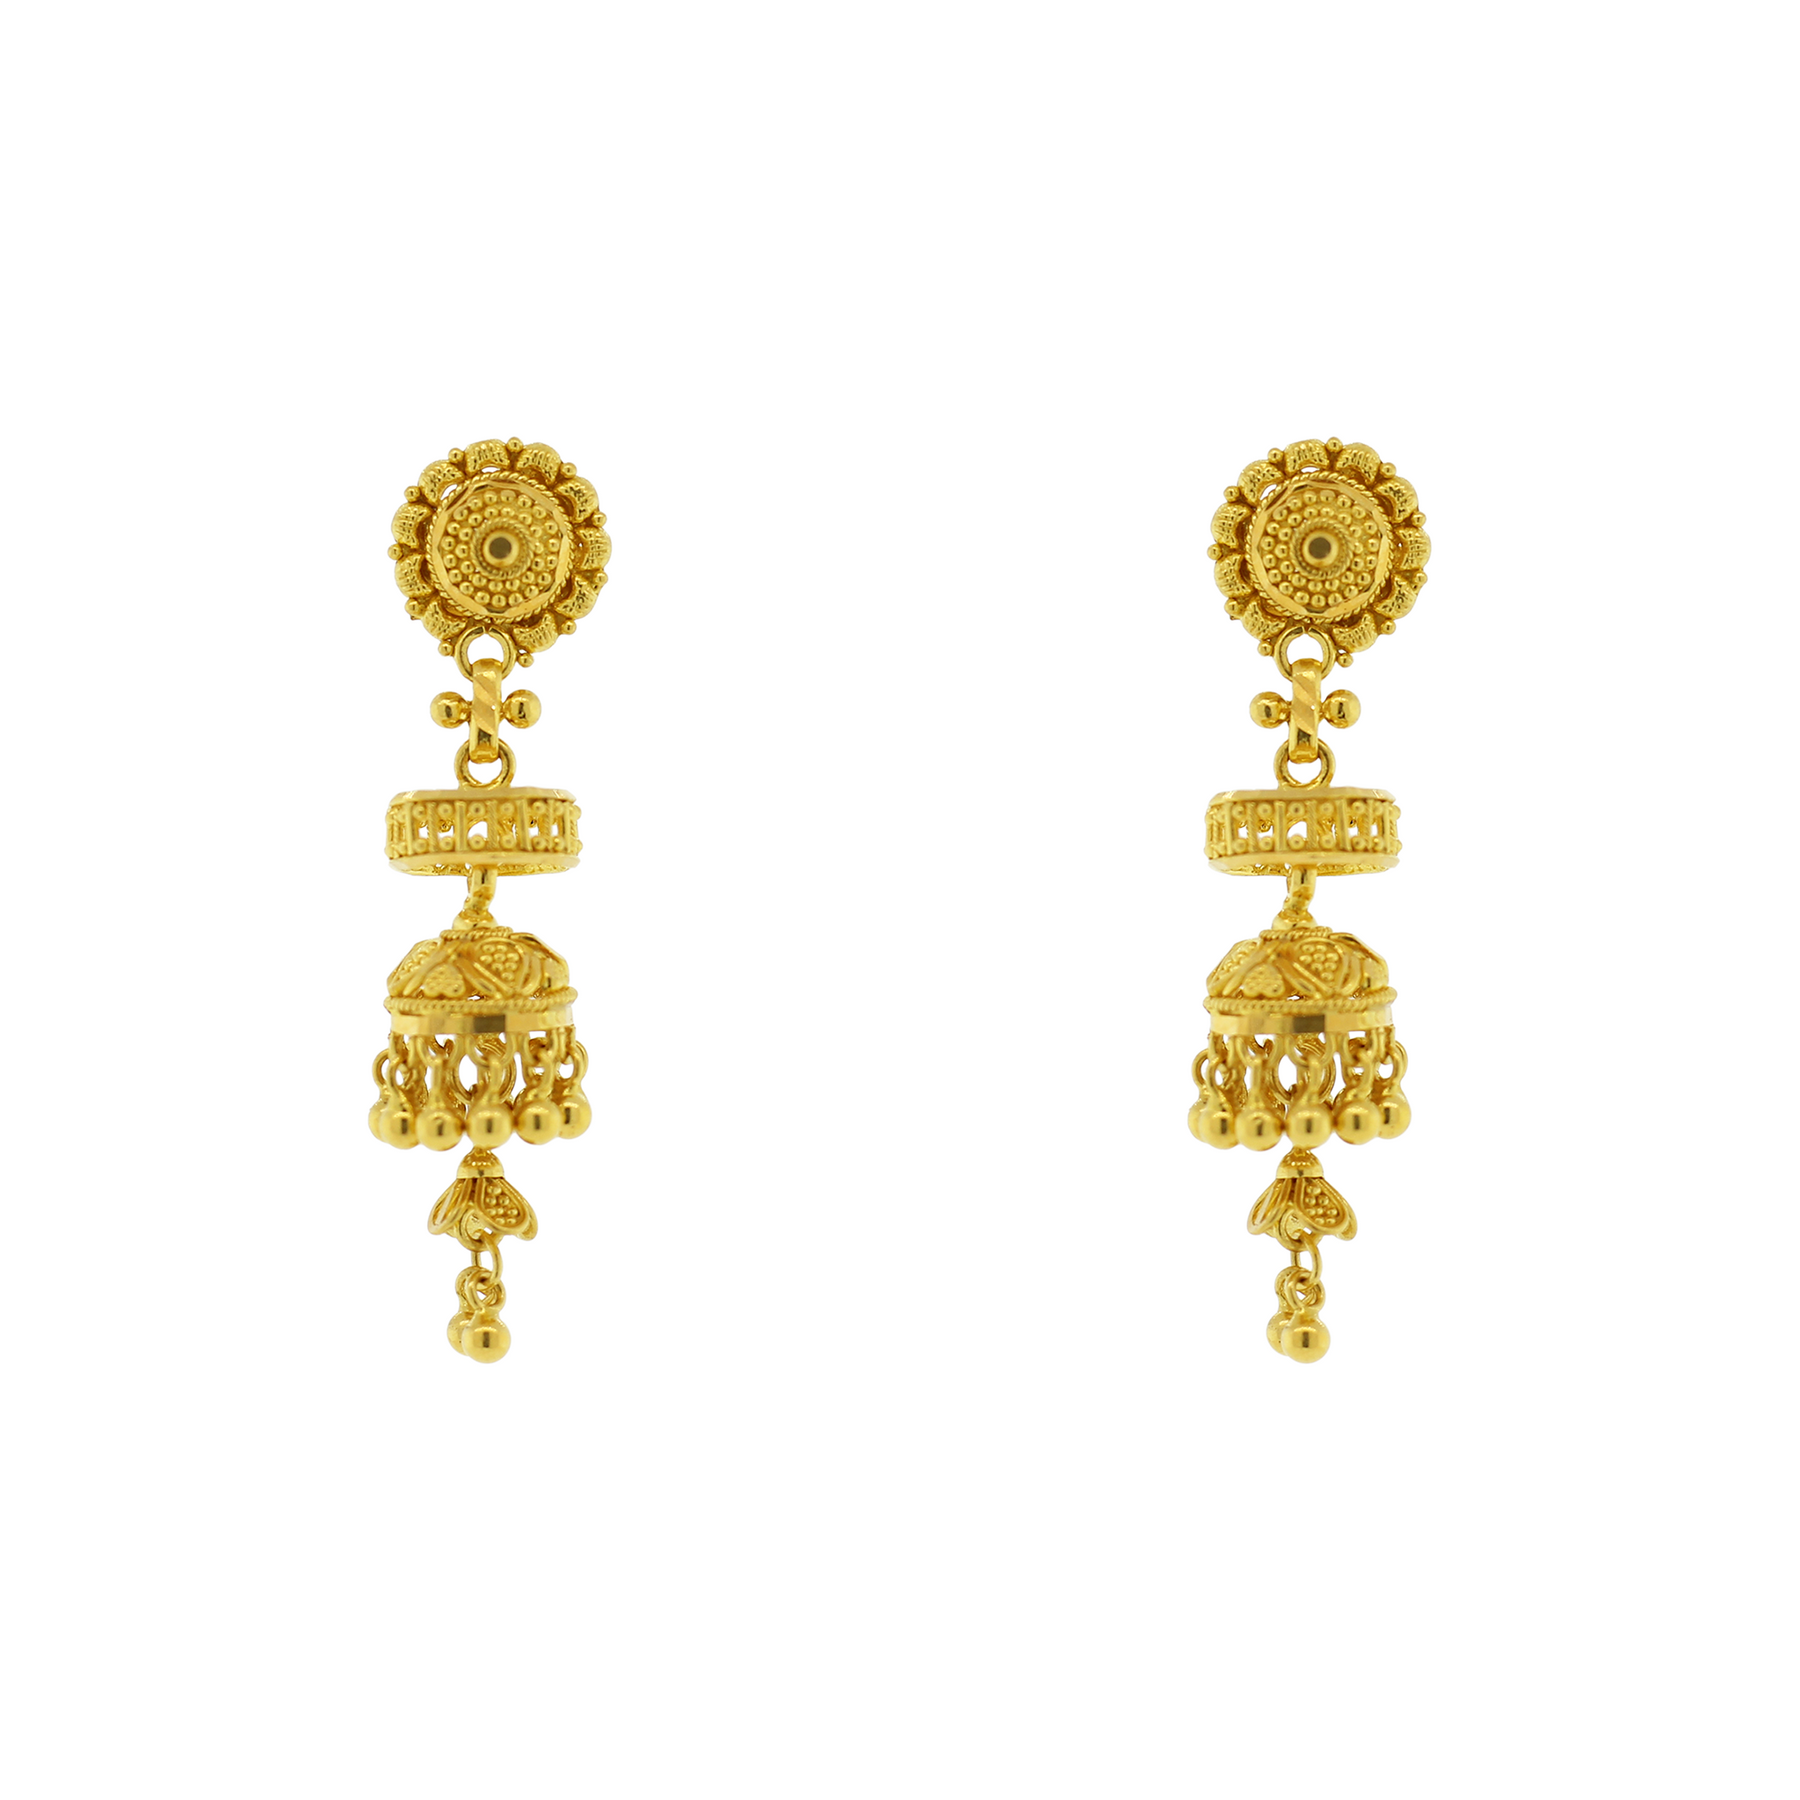 GOLD EARRINGS WITH HANGING JHUMKI – Andaaz Jewelers